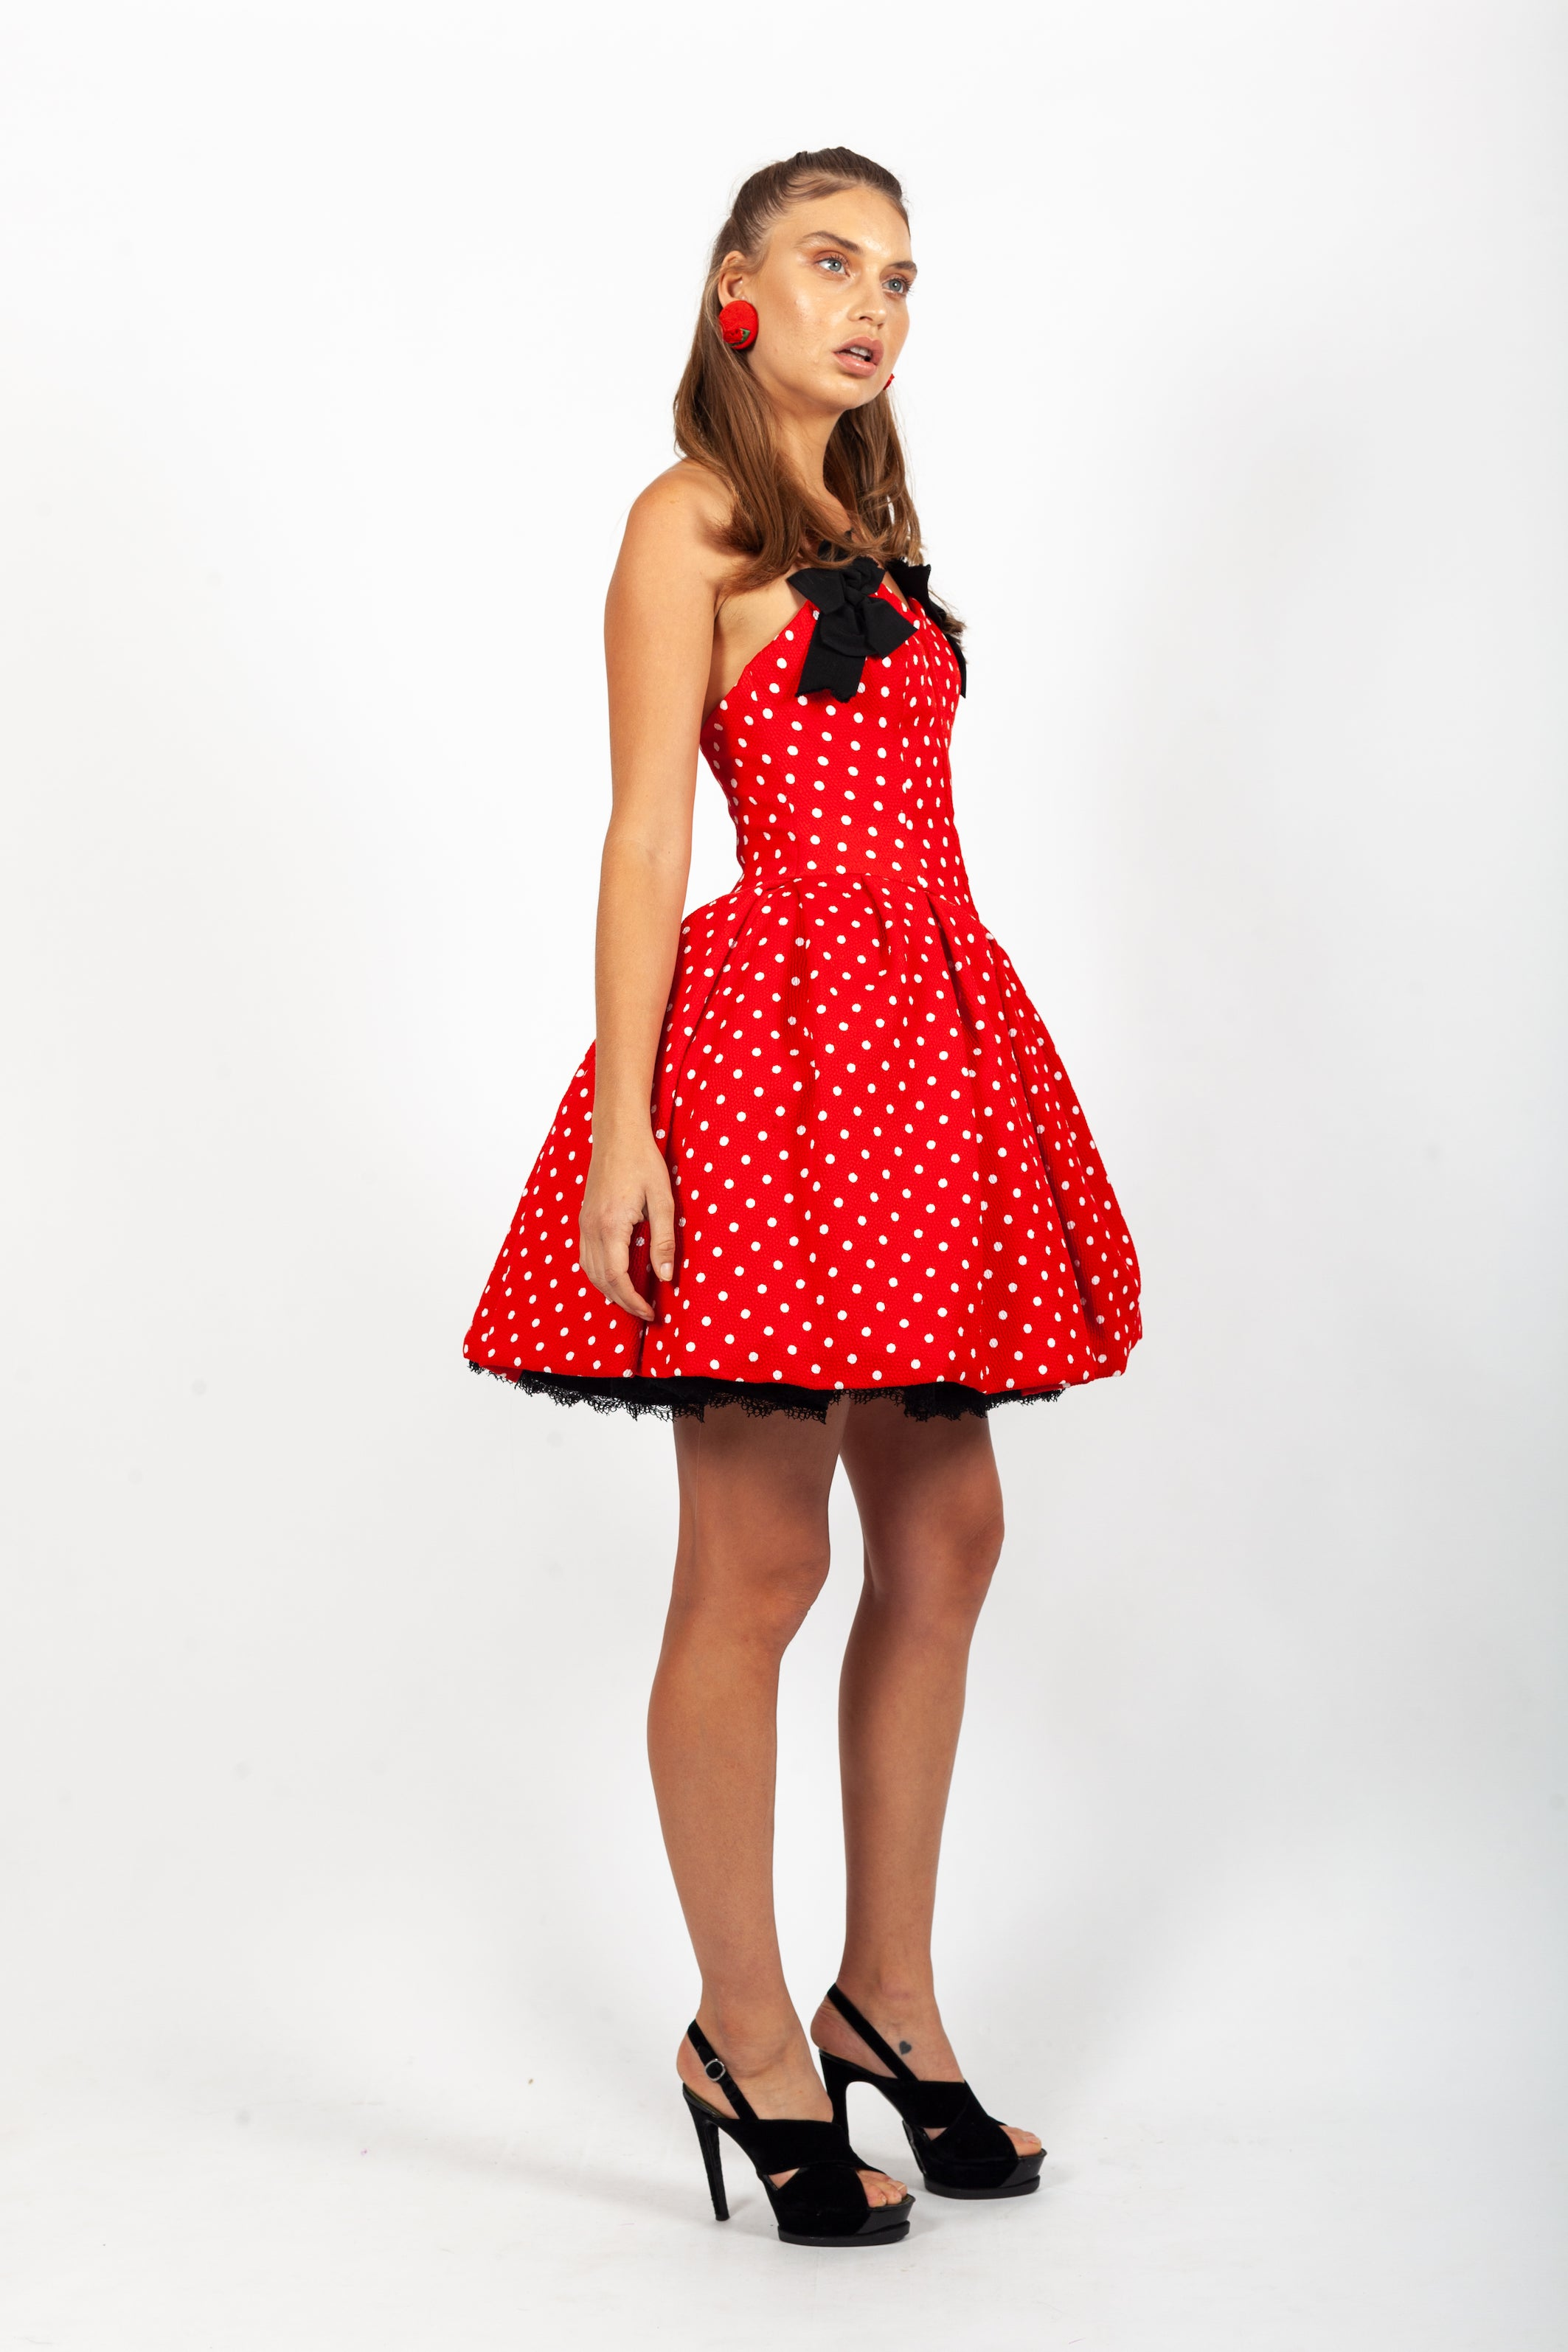 Christian Lacroix <br> S/S 1988 Luxe collection polka dot pouff dress